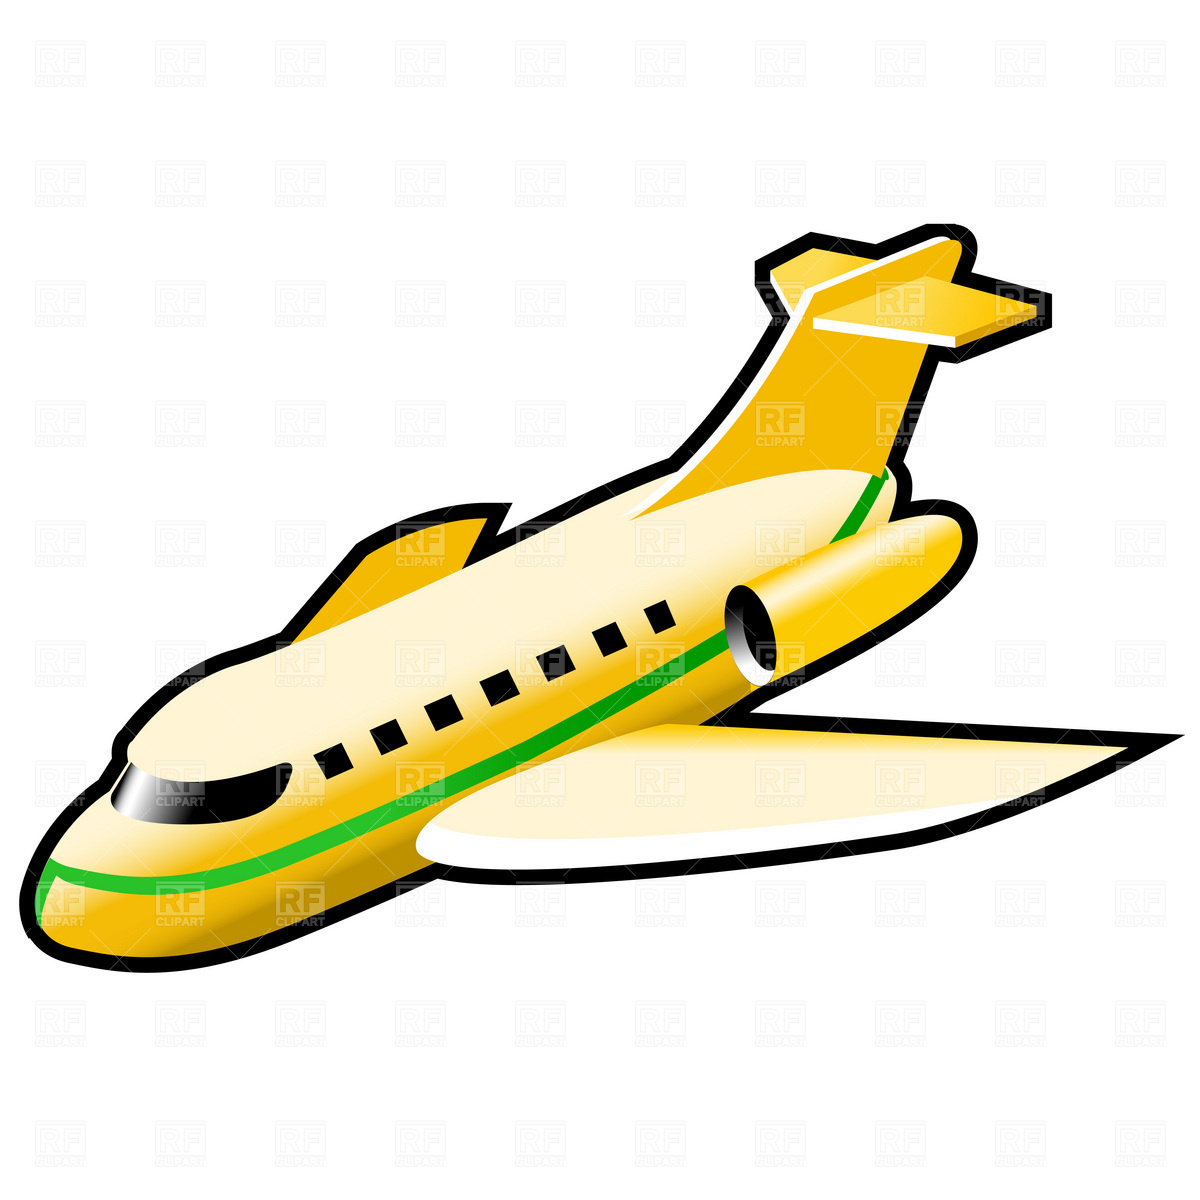 Jet clipart air transportation Airplane — Vintage (627) Airplane